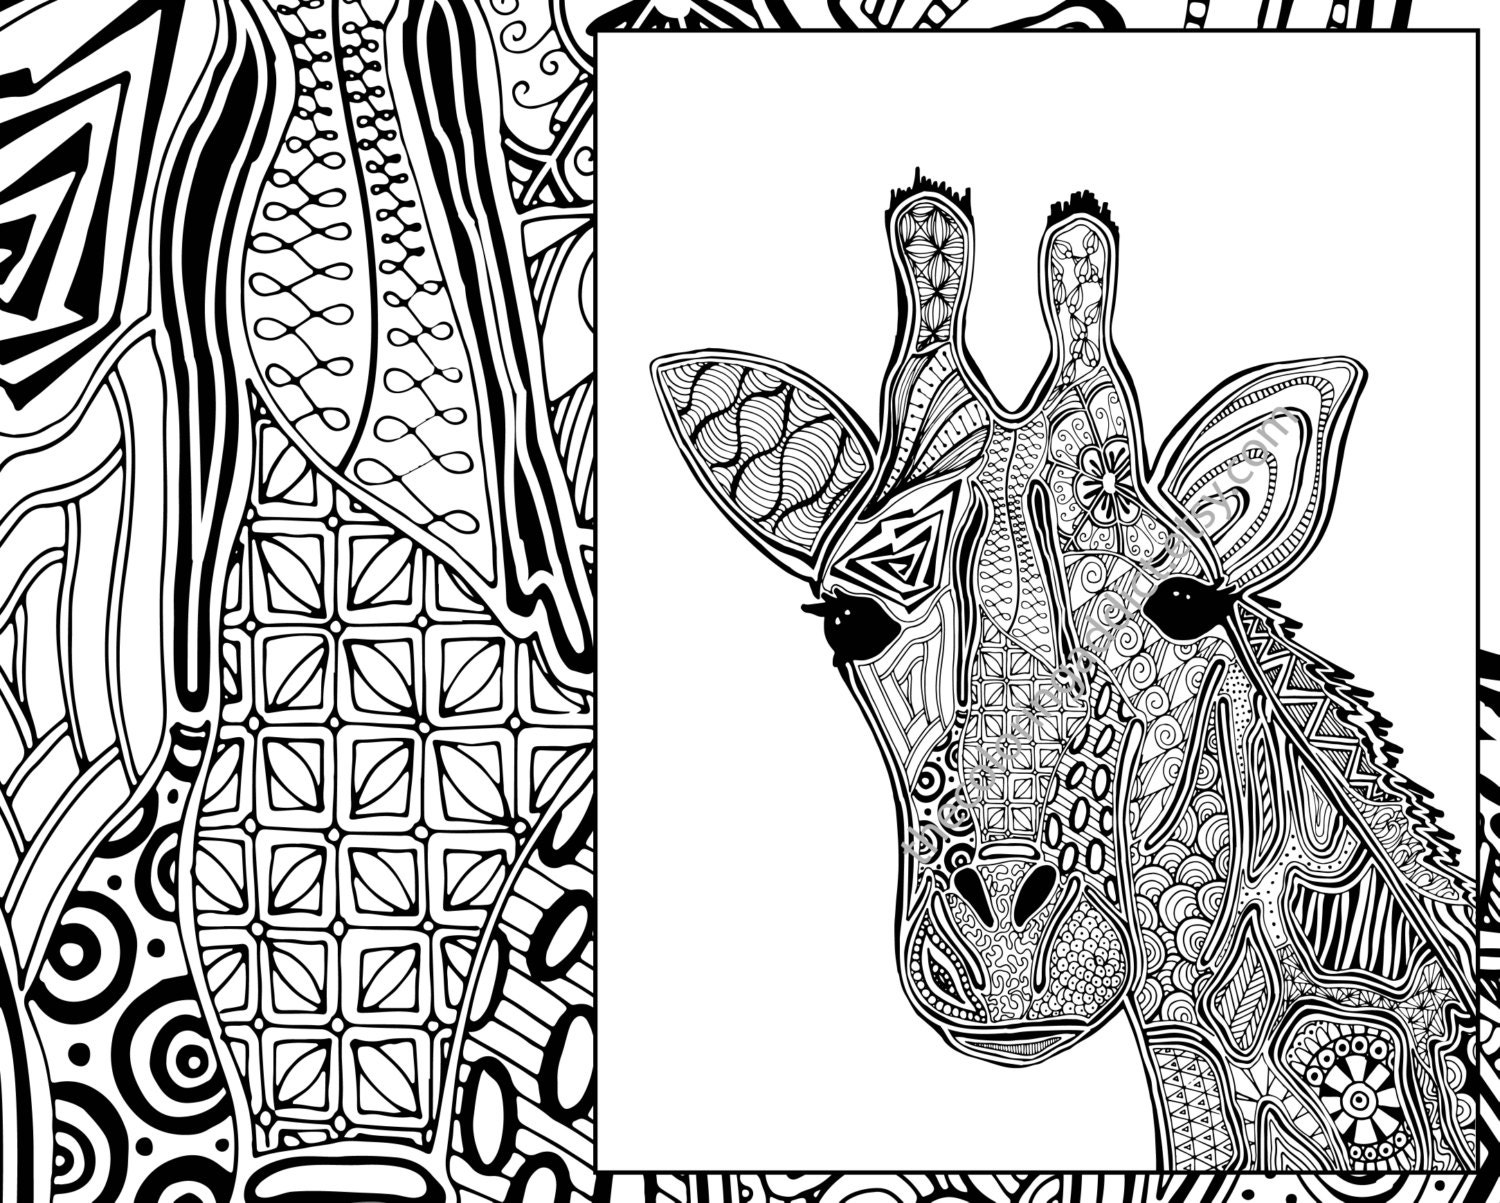 Giraffe Coloring Page Animal Coloring Page Adult Coloring Etsy